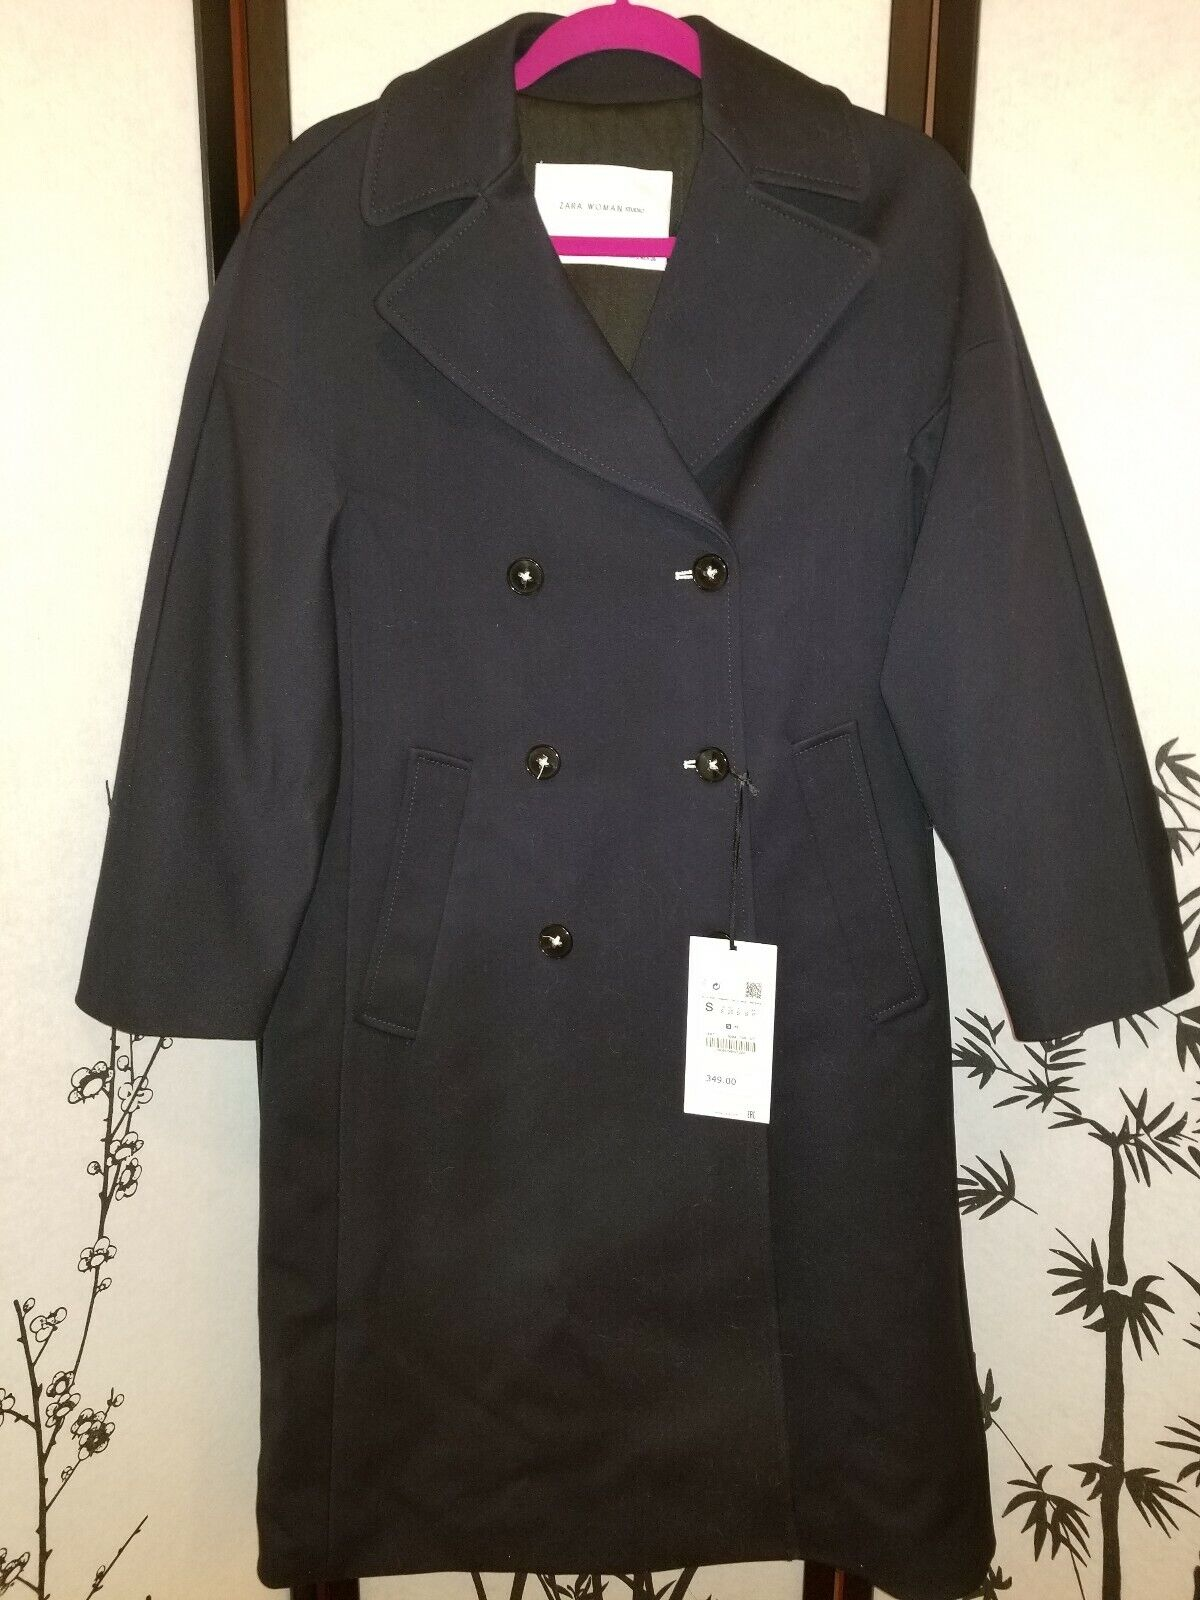 ZARA STUDIO DOUBLE-BREASTED COAT 8084 798 Navy bluee Size S